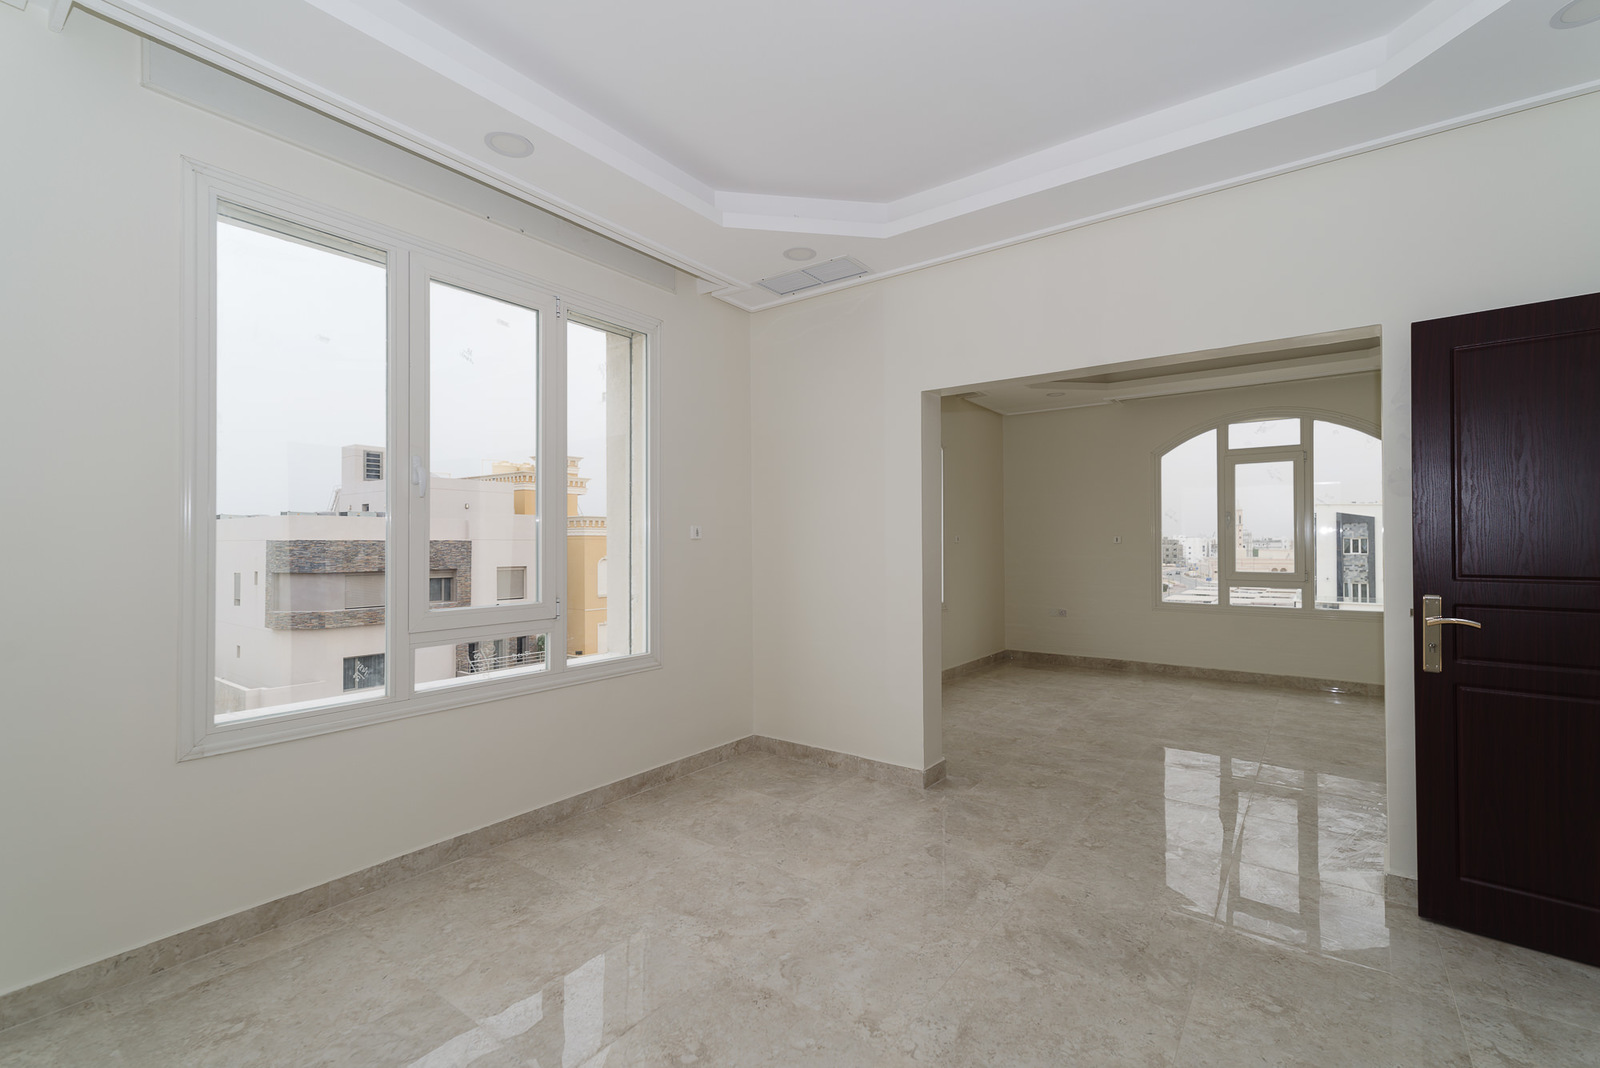 Fnaitees – new, unfurnished, two and three bedroom apartments